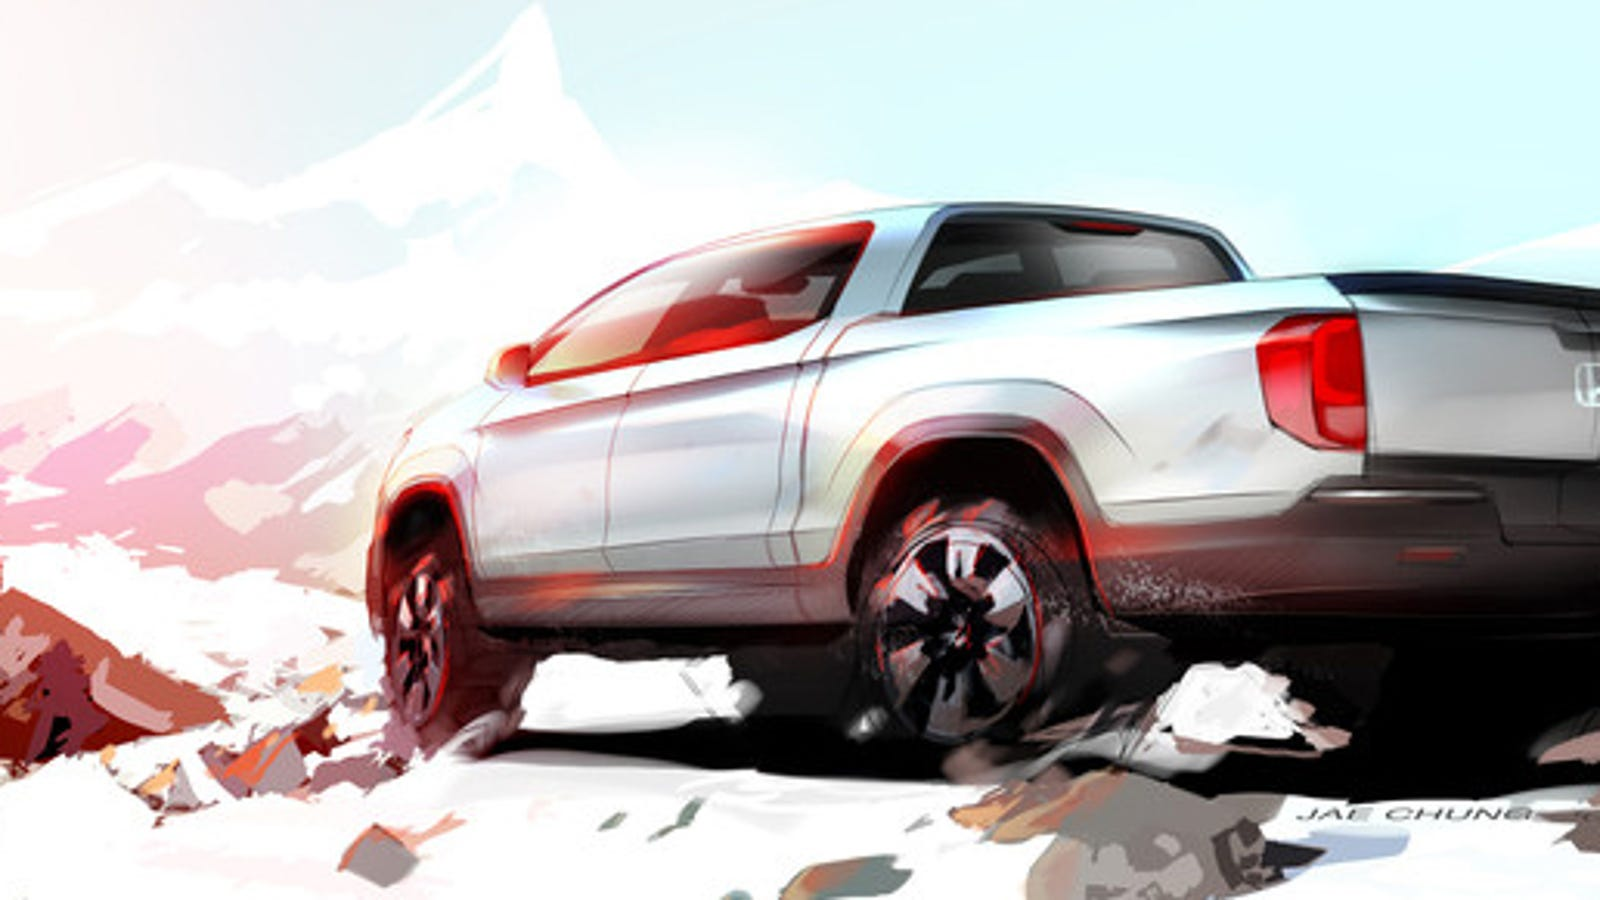 Will The New Honda Ridgeline Be A Real Manly Man Testosterone Truck?